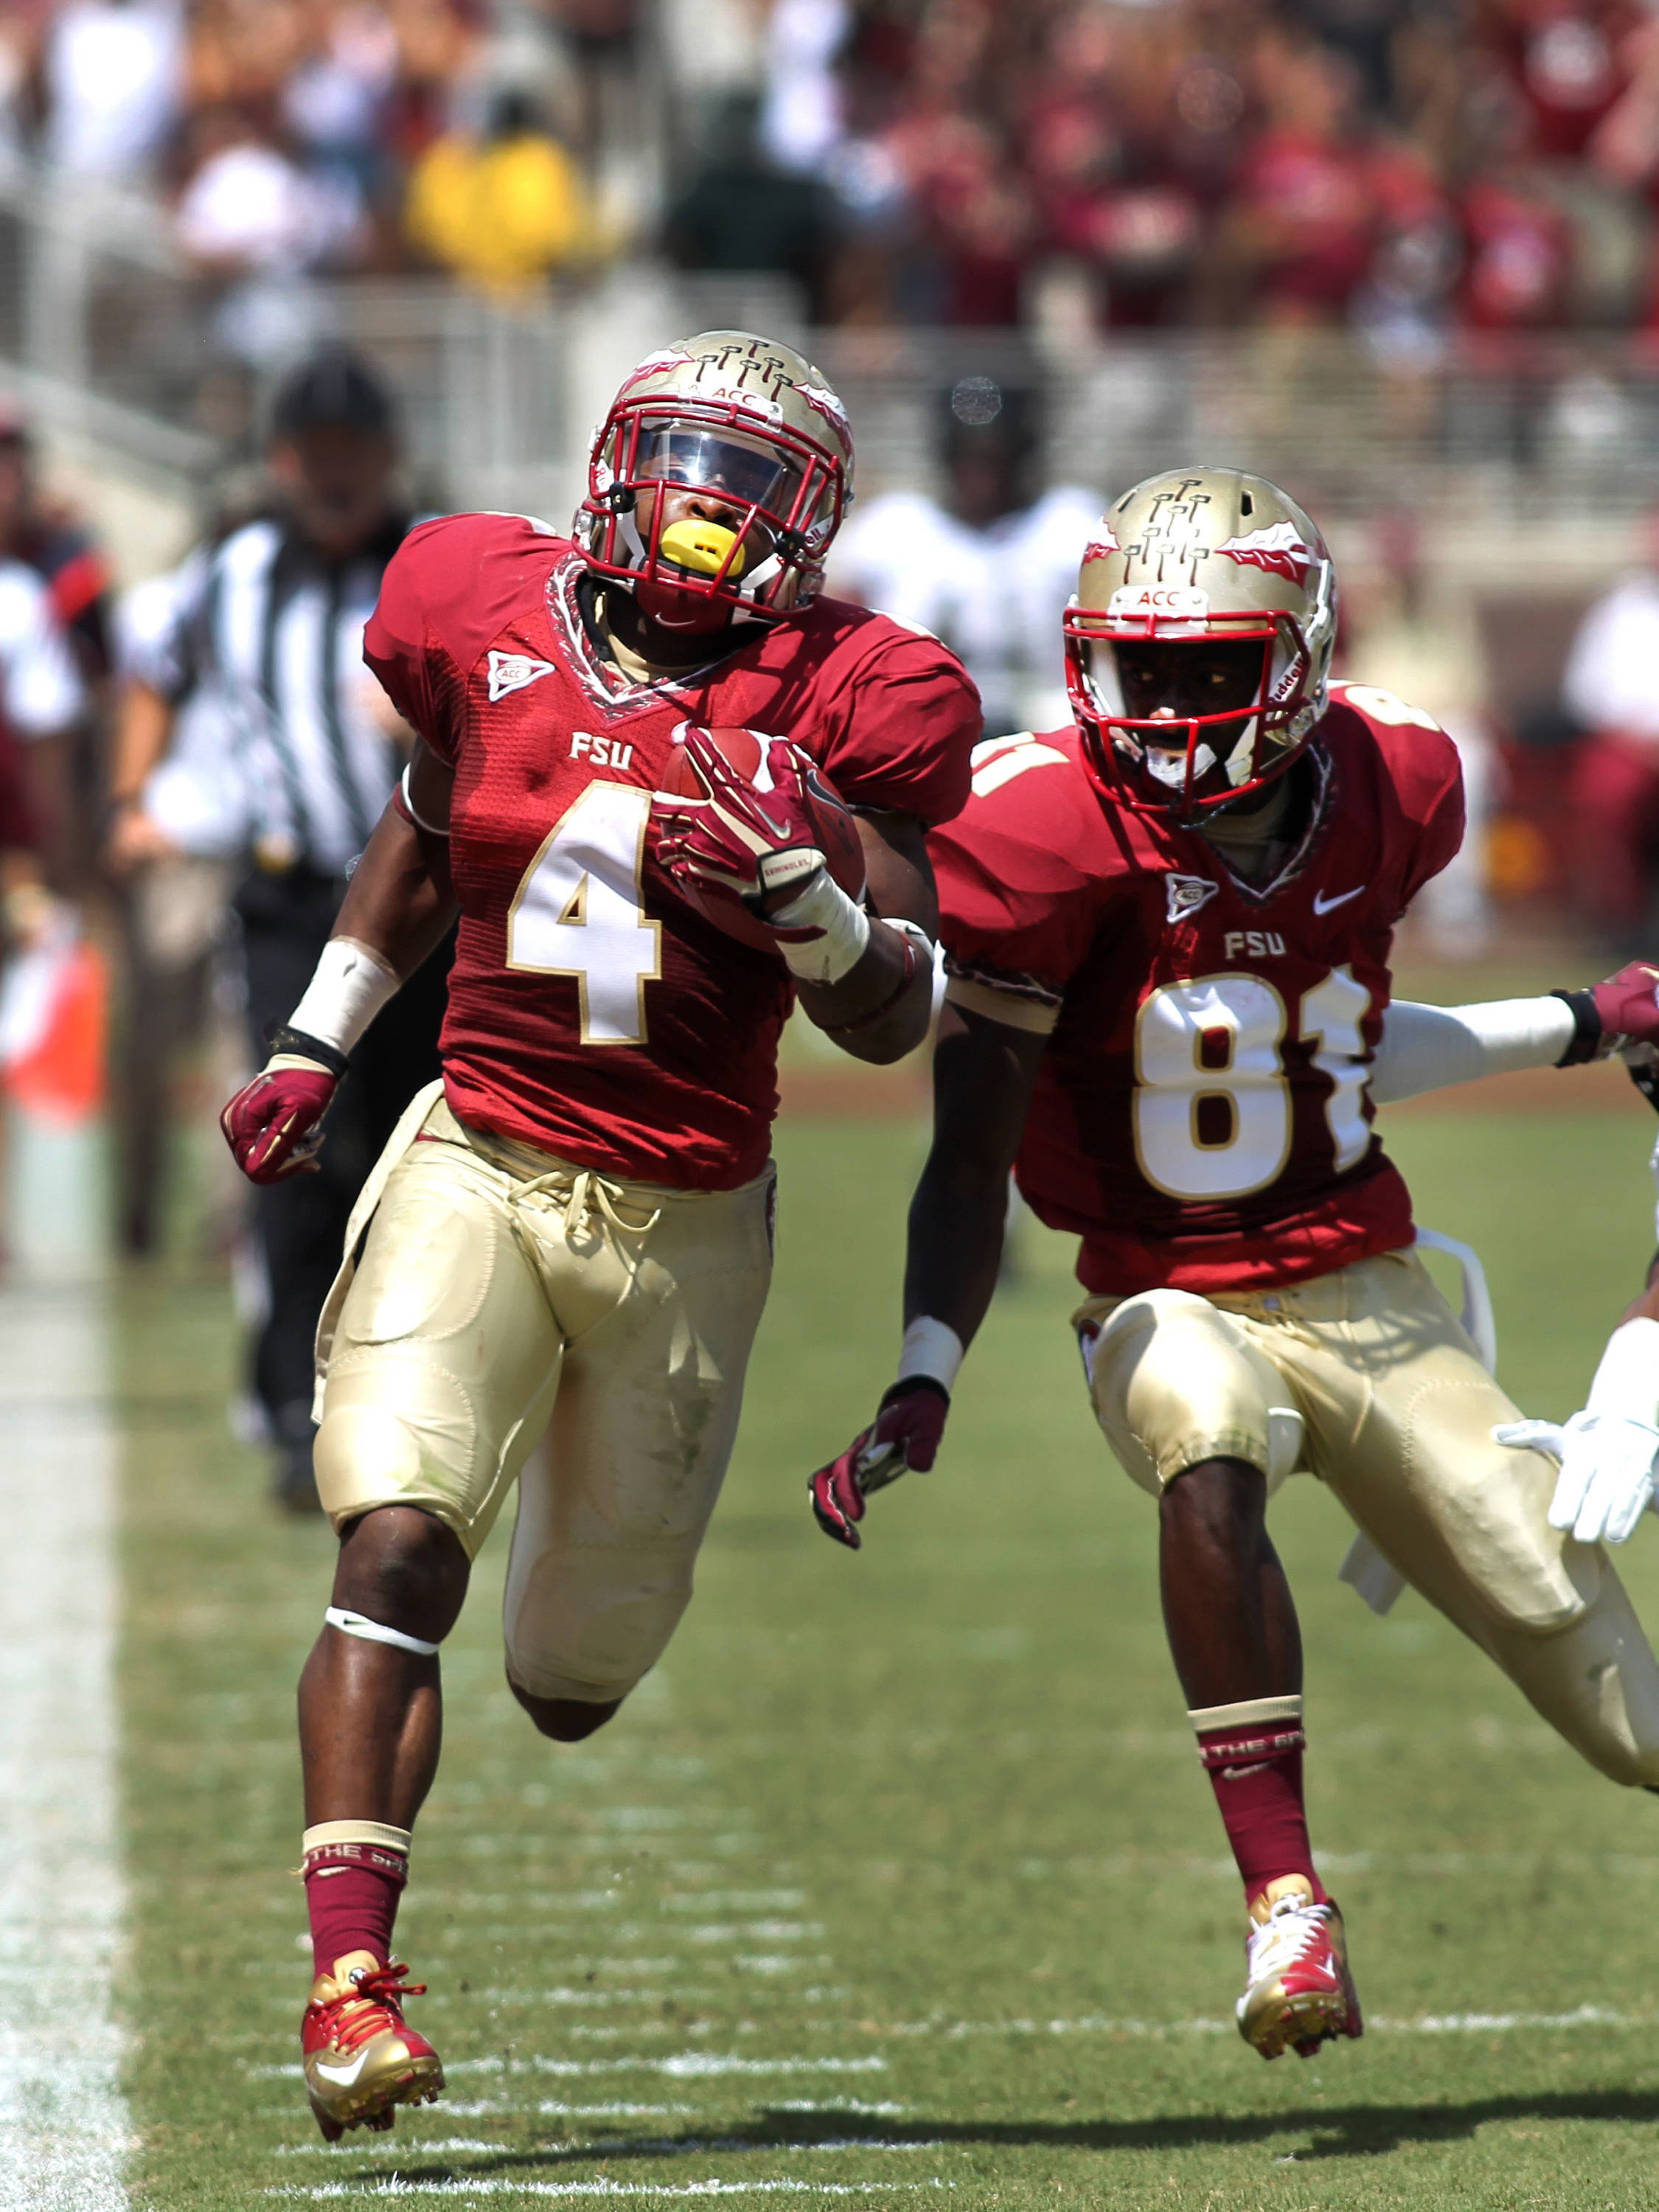 Chris Thompson (4) hugging the sideline on his touchdown run, FSU vs Wake Forest, 9/15/12 (Photo by Steve Musco)